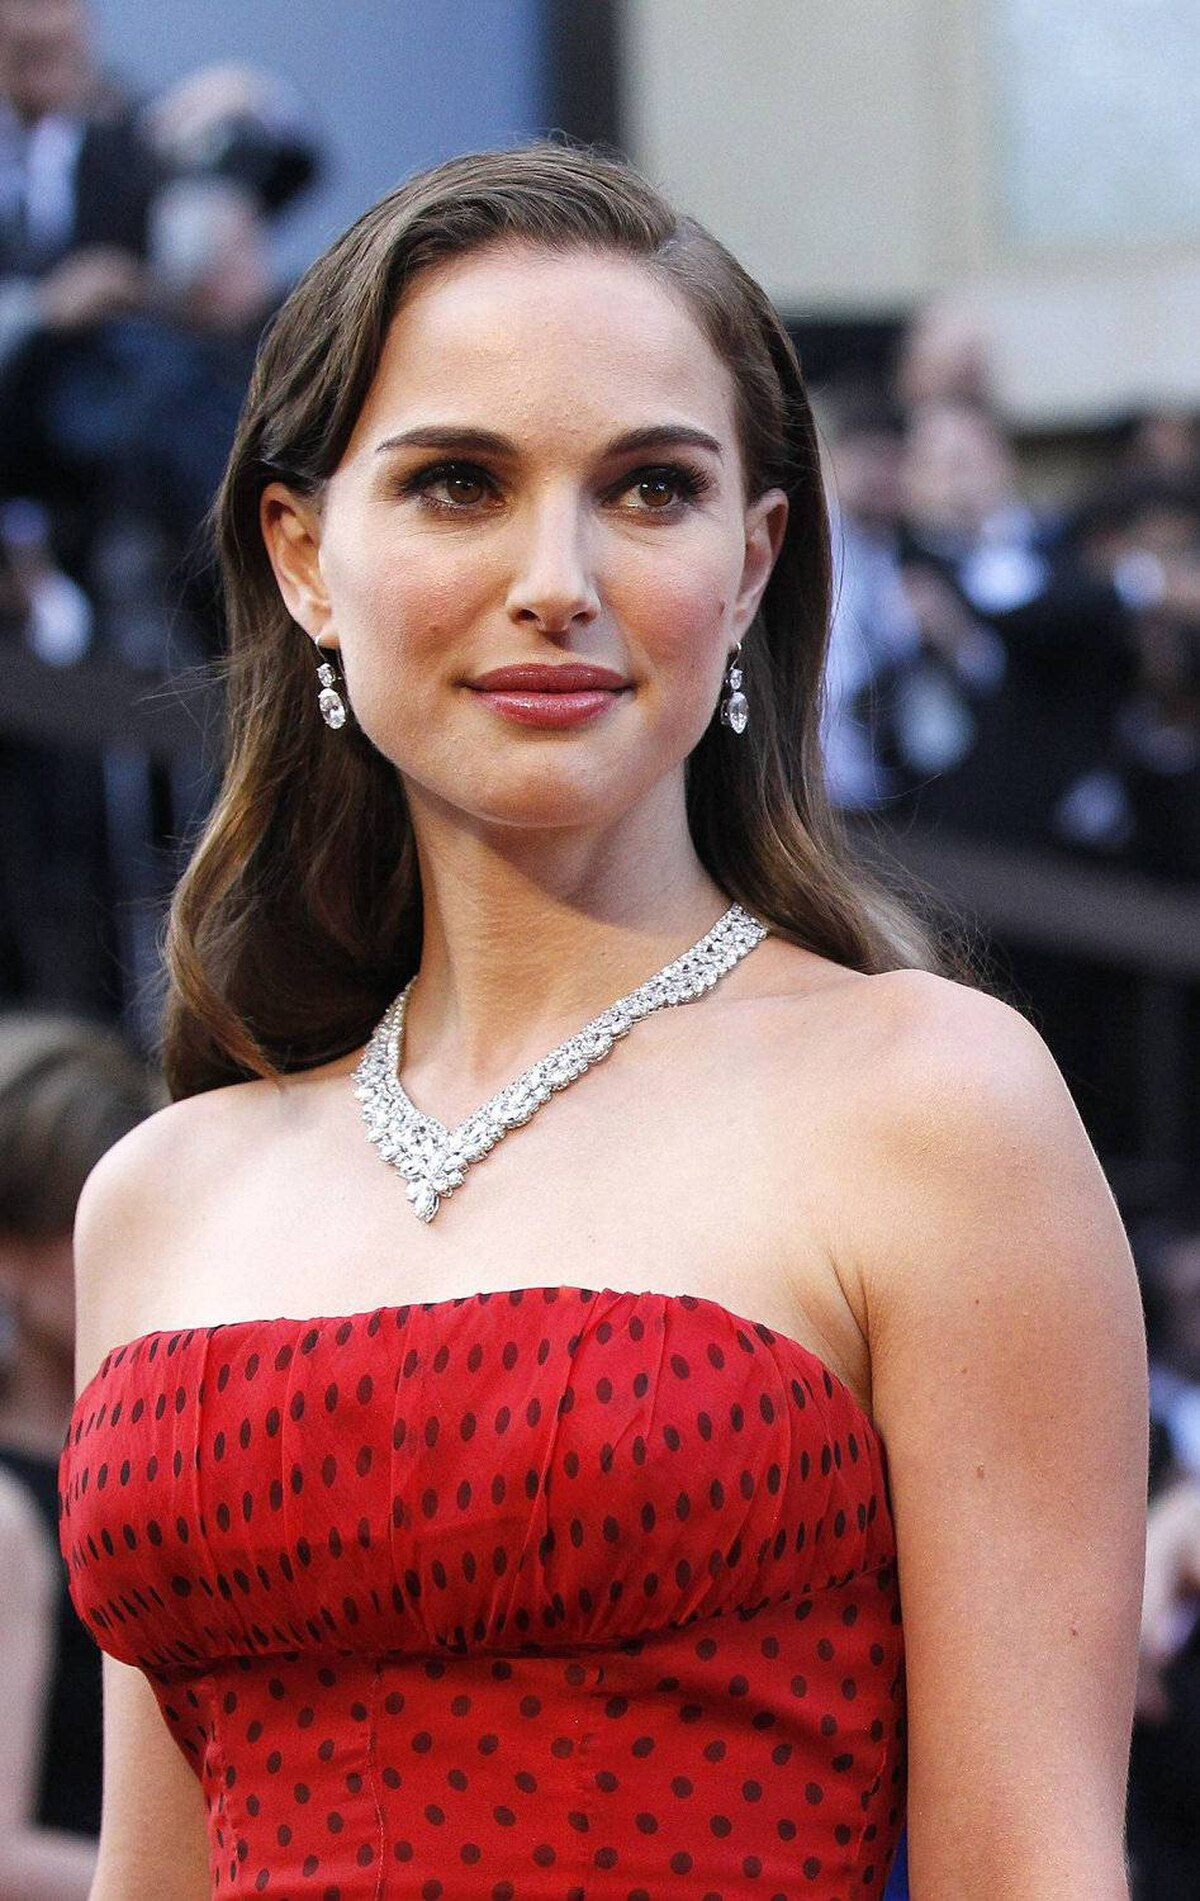 NATALIE PORTMAN 'I've been trying to look more like a lady recently. I used to be happy in a T-shirt and sweatpants, and now I feel like I want to make myself a little more grown-up - now that I'm a mom.' Source: Women's Wear Daily